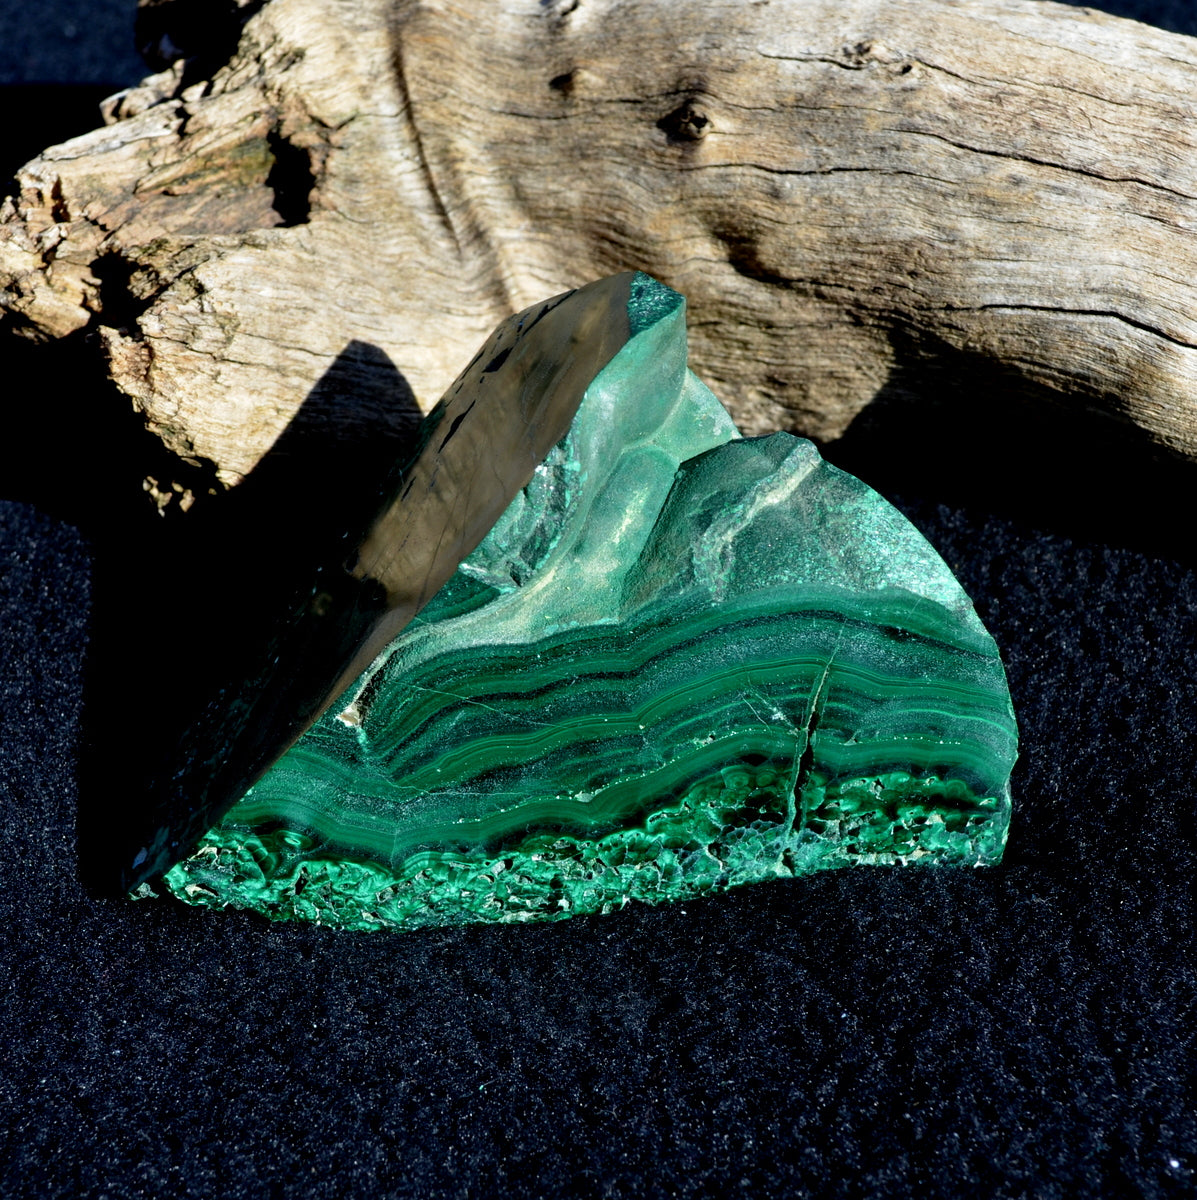 Malachite Polished Natural Specimen - Heart Protection Healing - Shop Now at Illiom Crystals.  Now with Afterpay